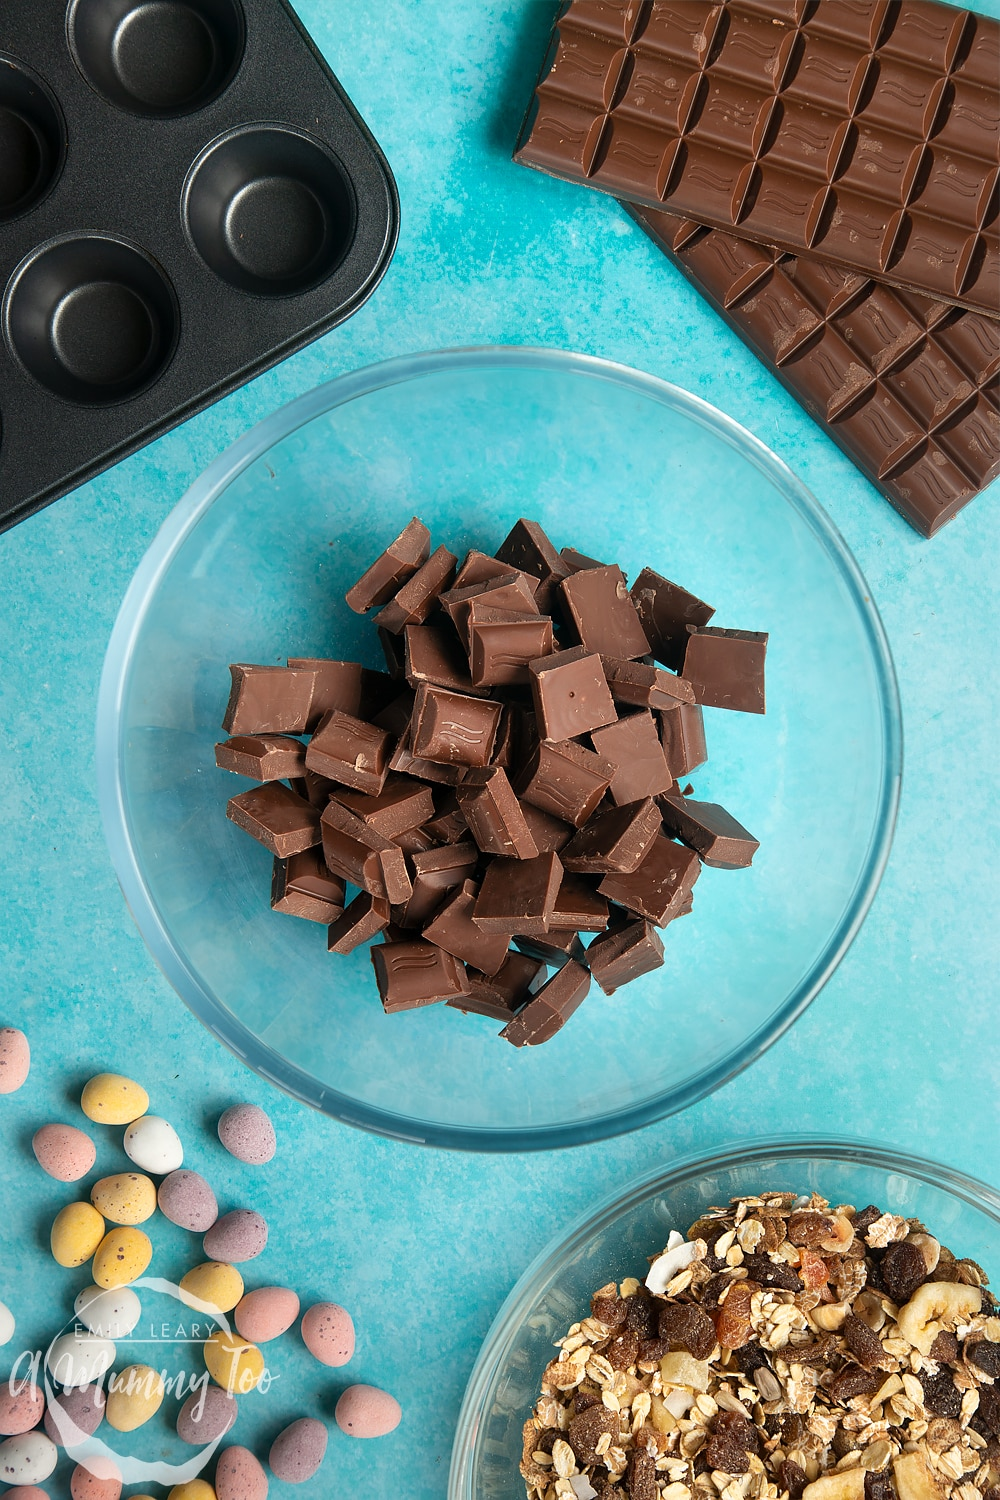 Overhead shot of chocolate in a microwave-safe bowl